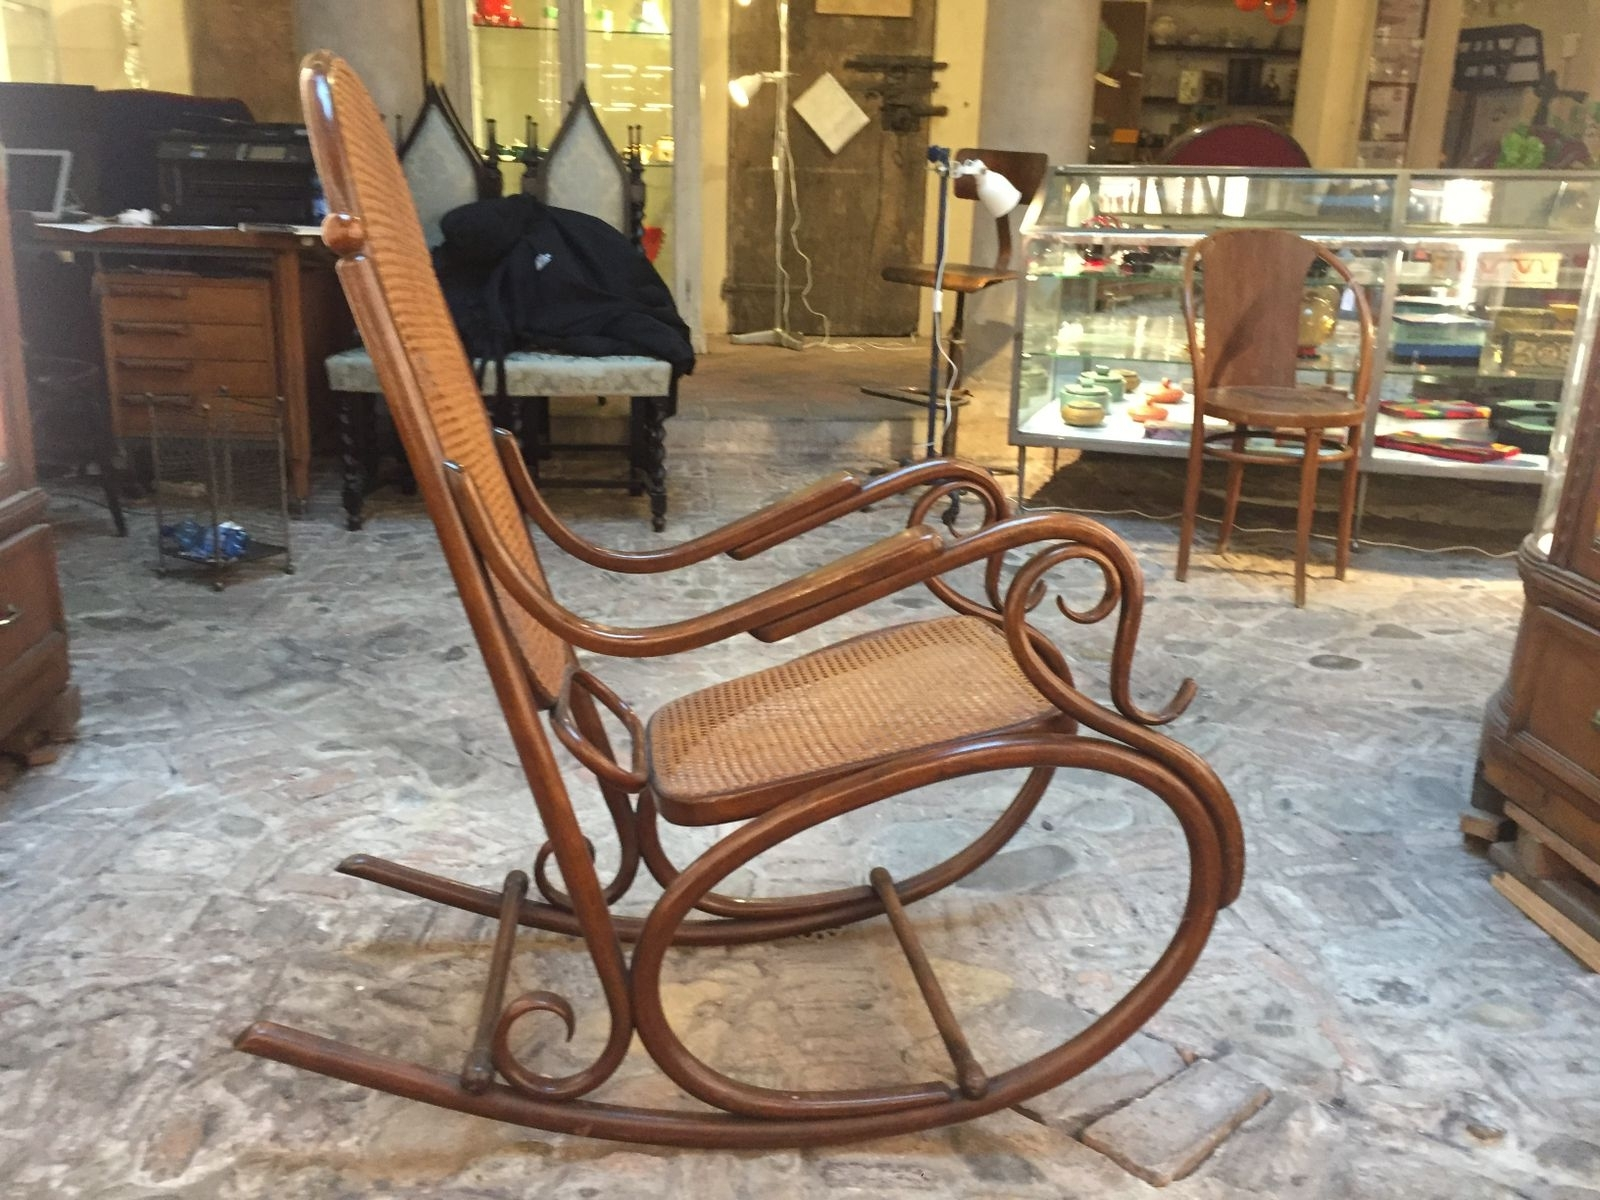 Most Recently Released Antique Rocking Chairs Regarding Antique Rocking Chair For Sale – Image Antique And Candle (View 14 of 15)